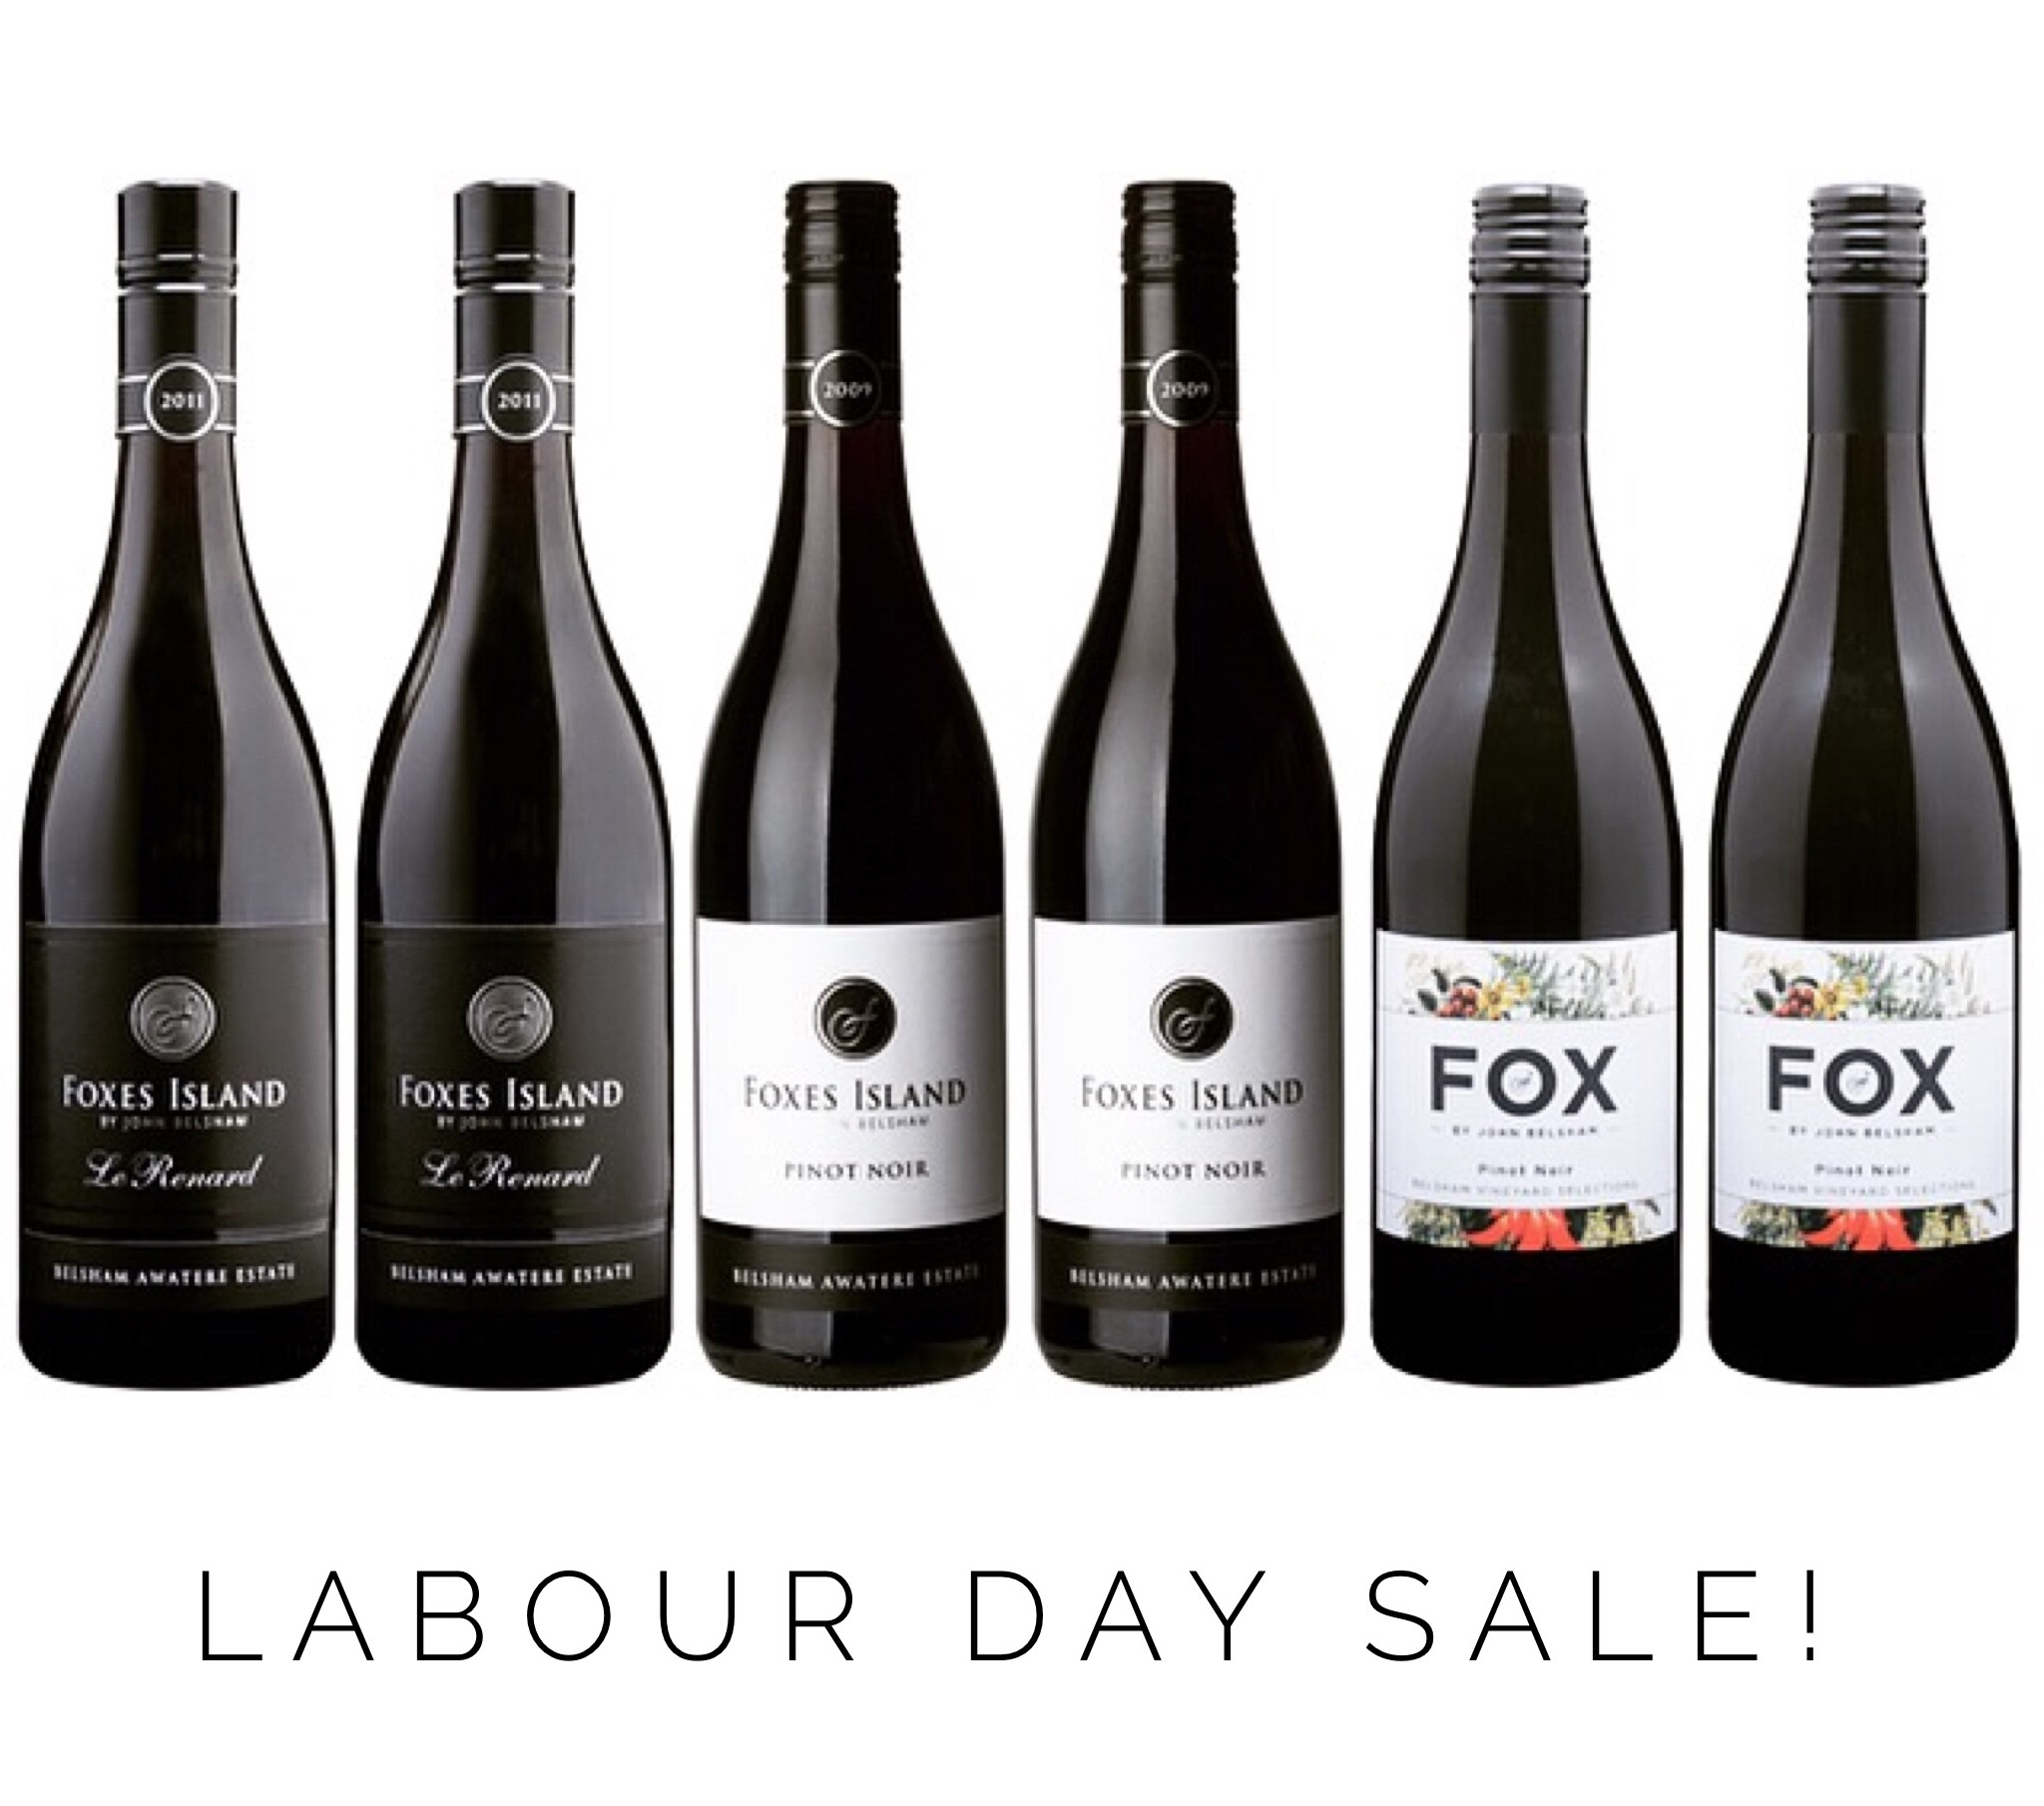 Foxes Island Labour Day Sale